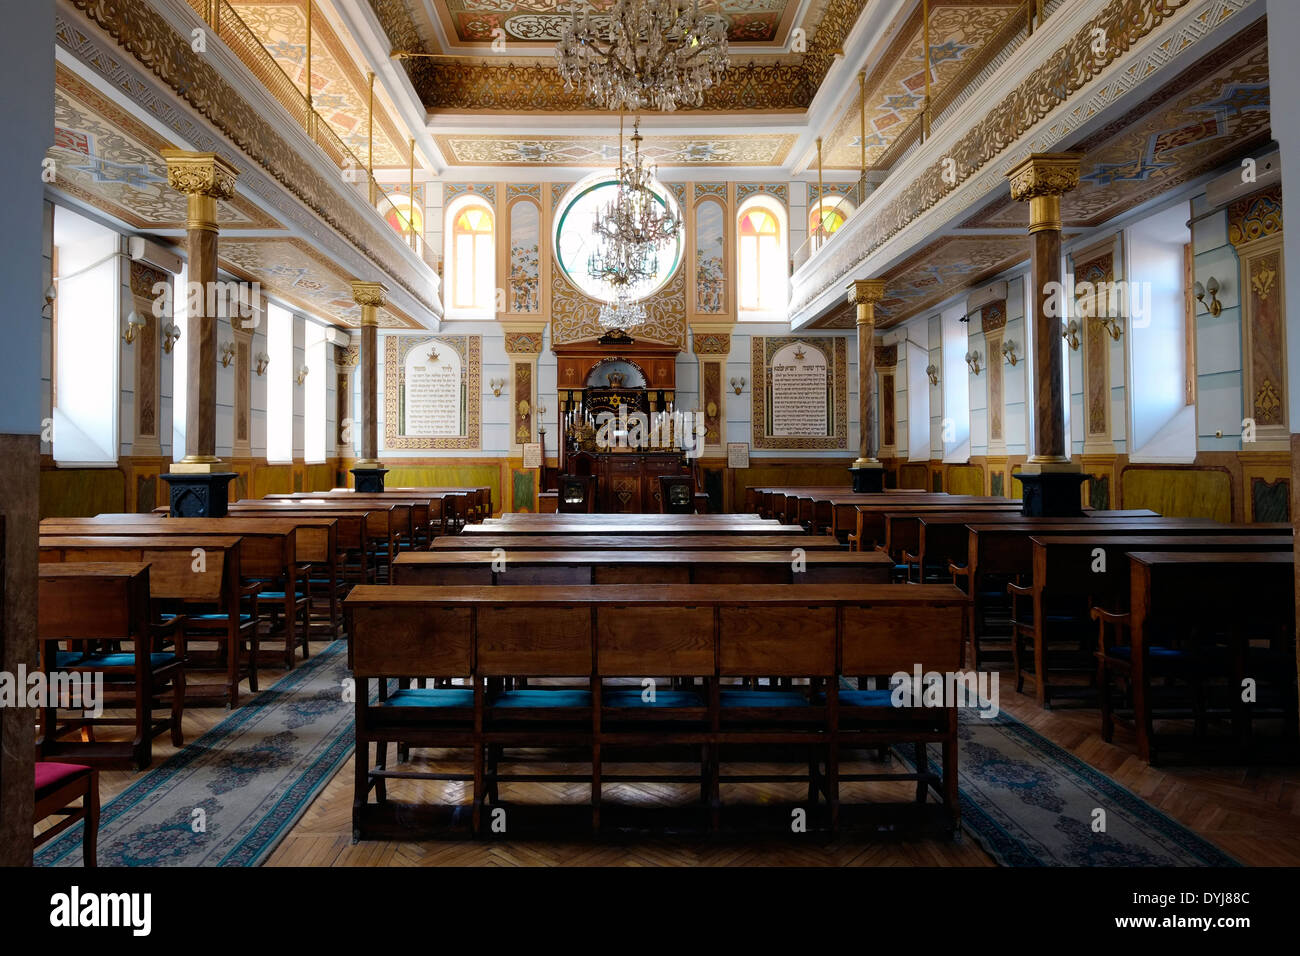 Interior of the Great Jewish Synagogue built from 1895 to 1903 in an eclectic style by Georgian Jews from Akhaltsikhe - Stock Image